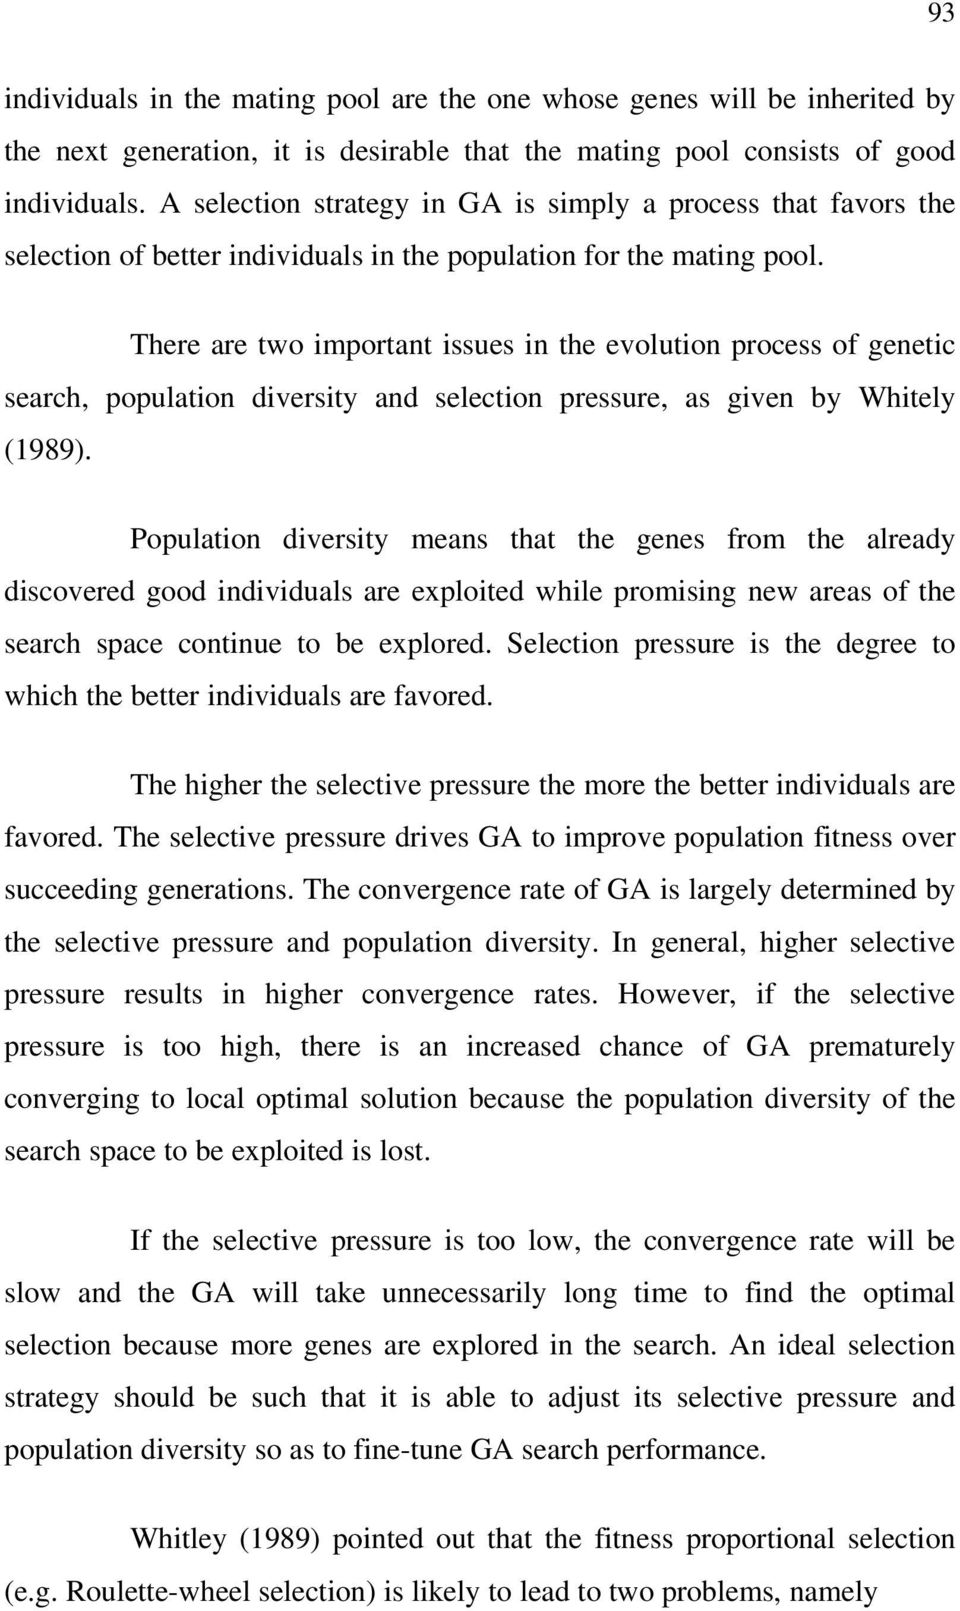 There are two important issues in the evolution process of genetic search, population diversity and selection pressure, as given by Whitely (1989).